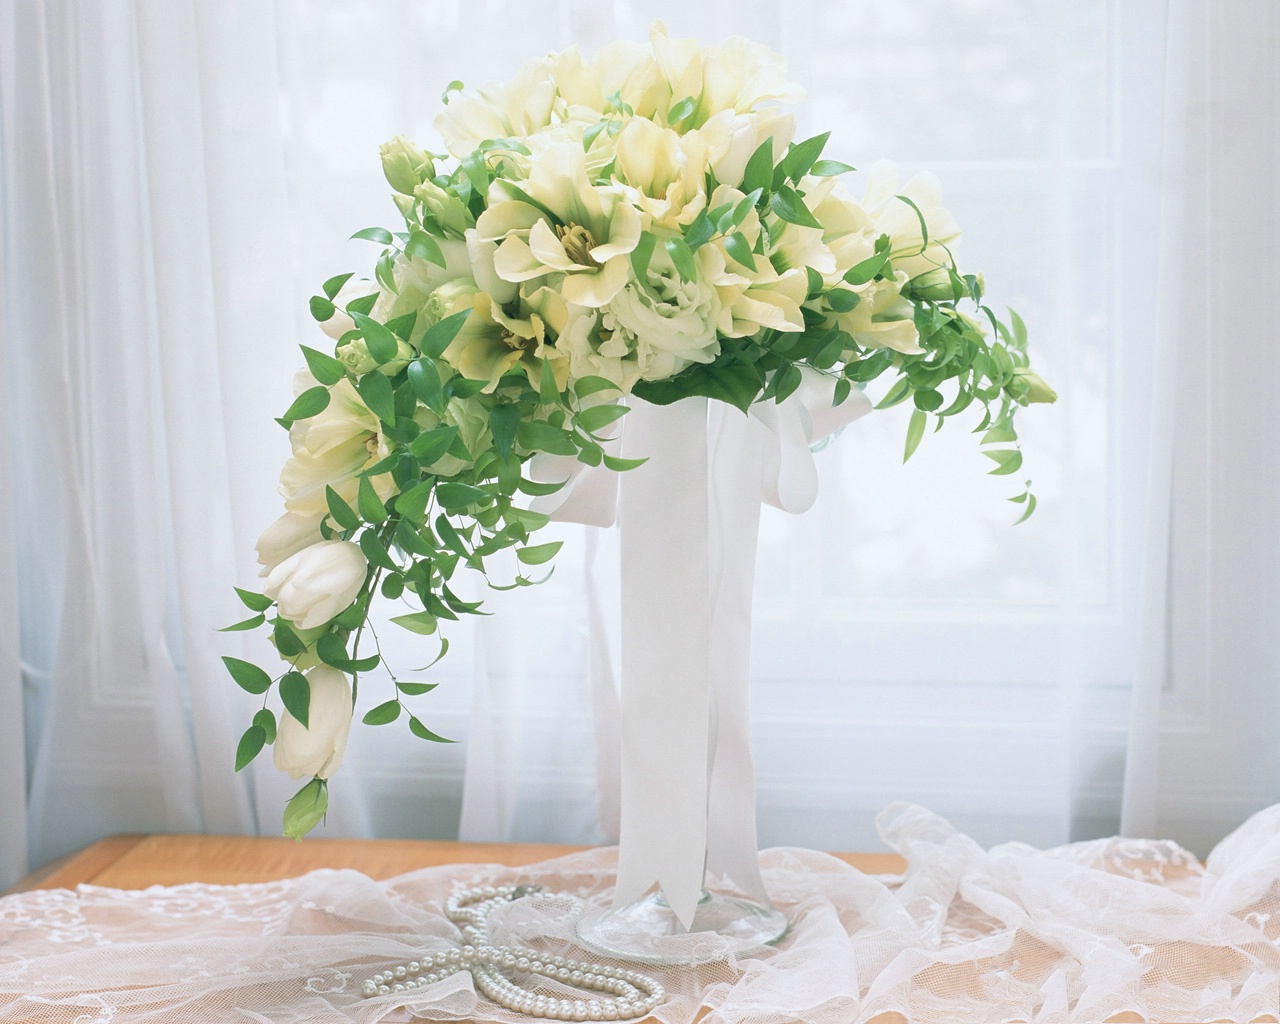 click to free download the wallpaper--Wedding Flowers Picture, White and Pure Flowers, White Curtain, Bright Future 1280X1024 free wallpaper download